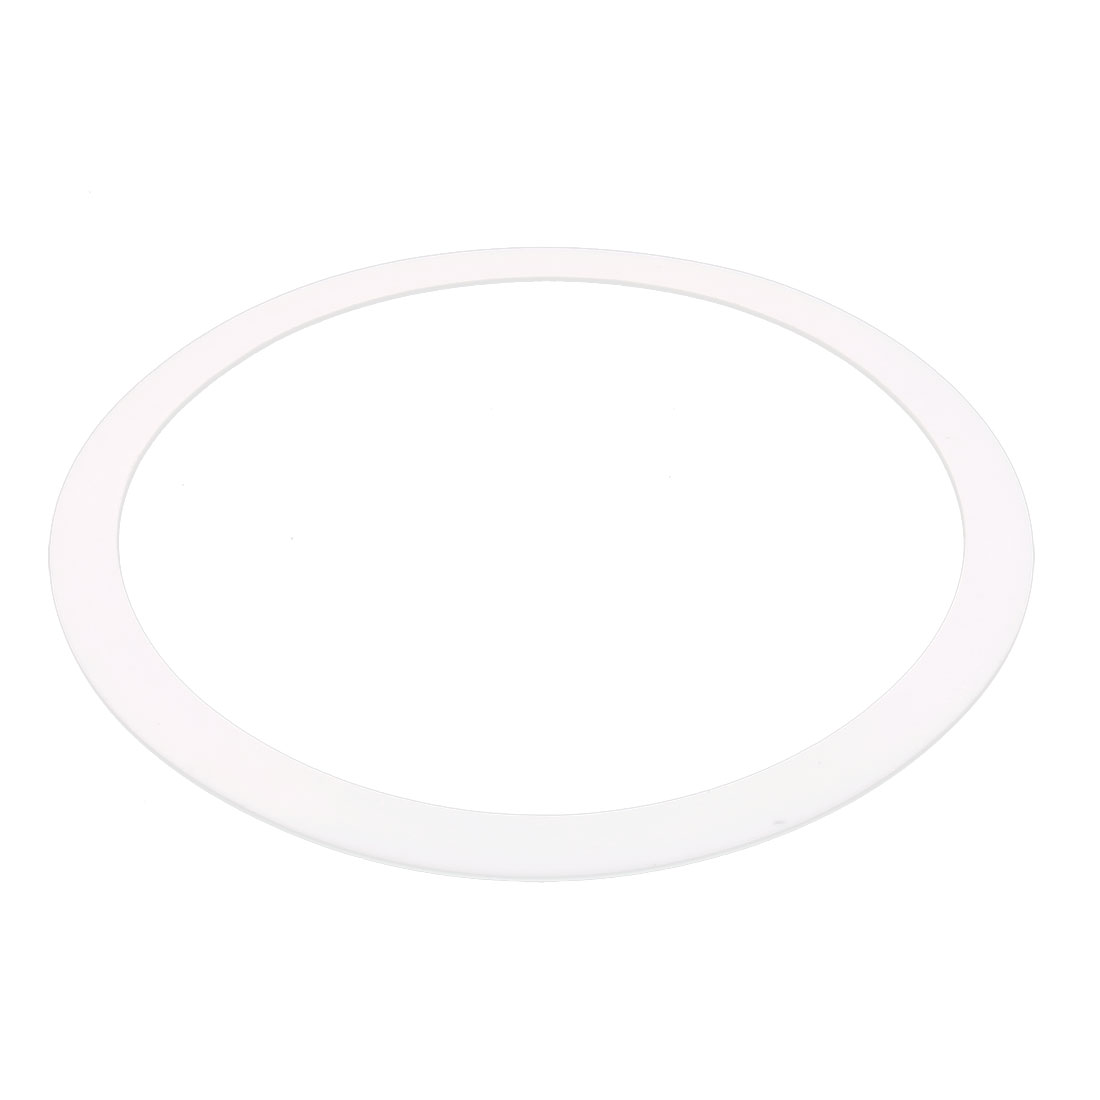 DN300 378mm x 325mm x 3mm PTFE Flange Gasket Sanitary Pipe Fitting Ferrule White